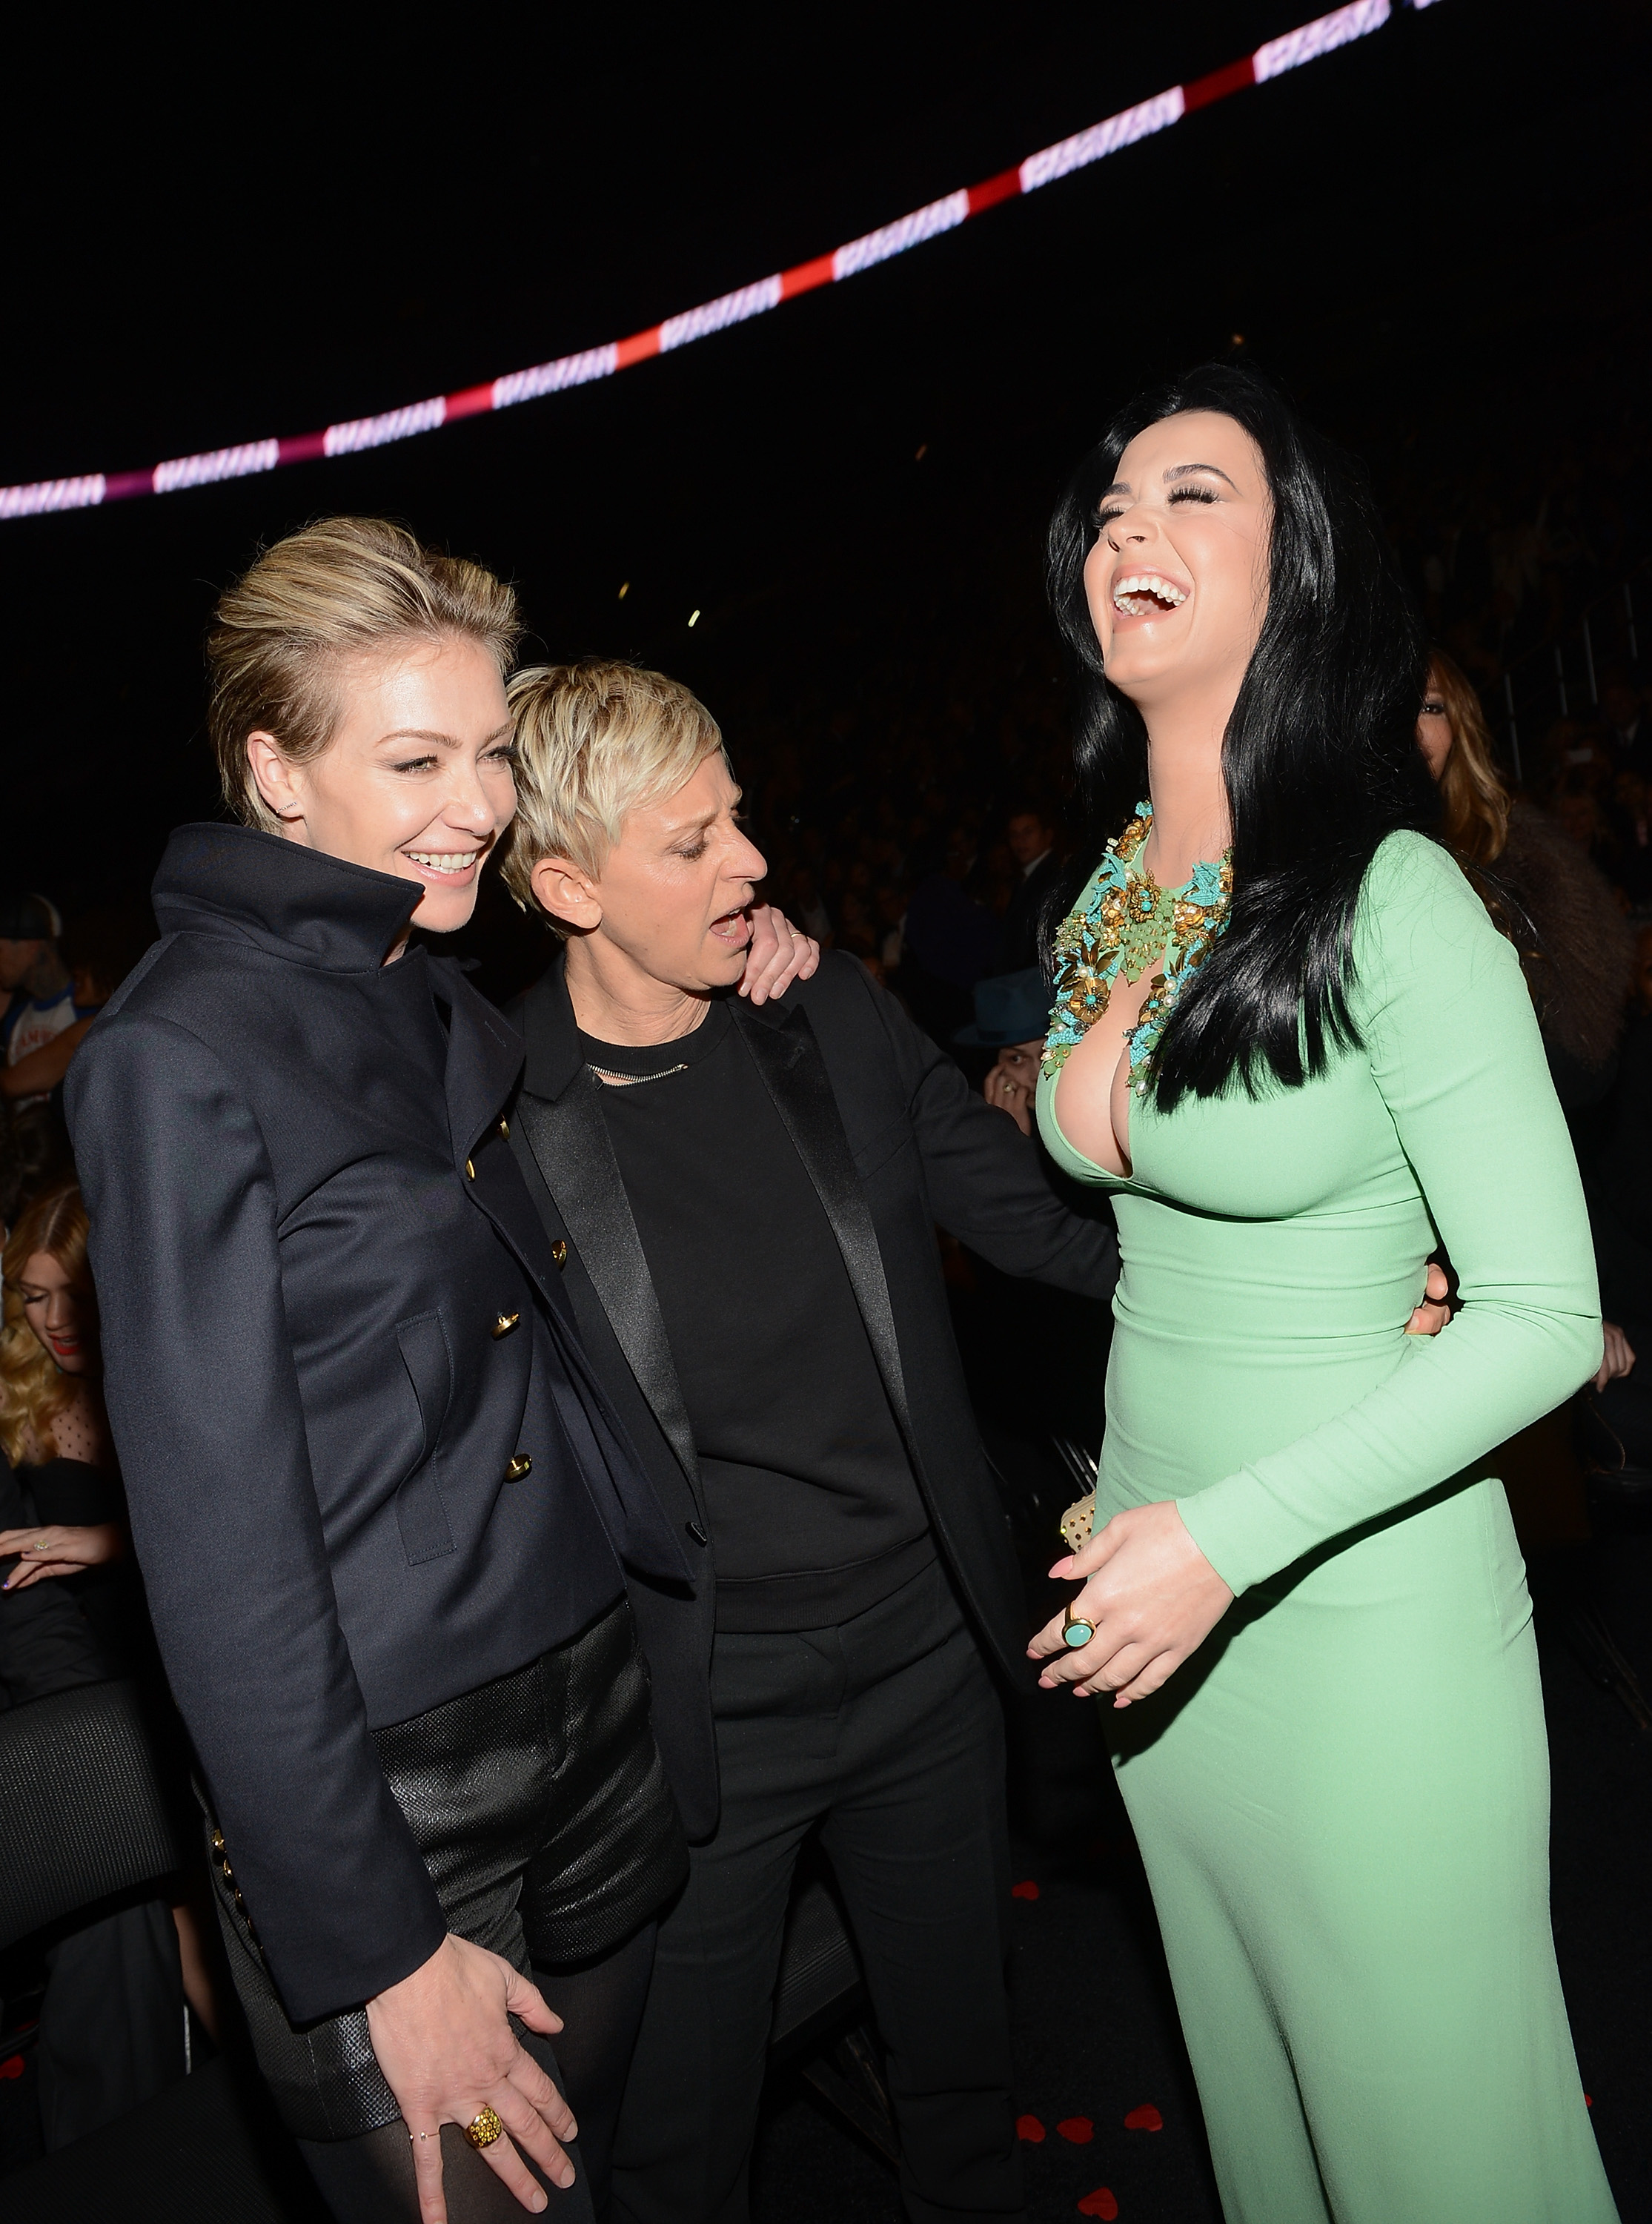 Ellen DeGeneres and Portia de Rossi got a good look at Katy Perry's dress at the 2013 Grammys.